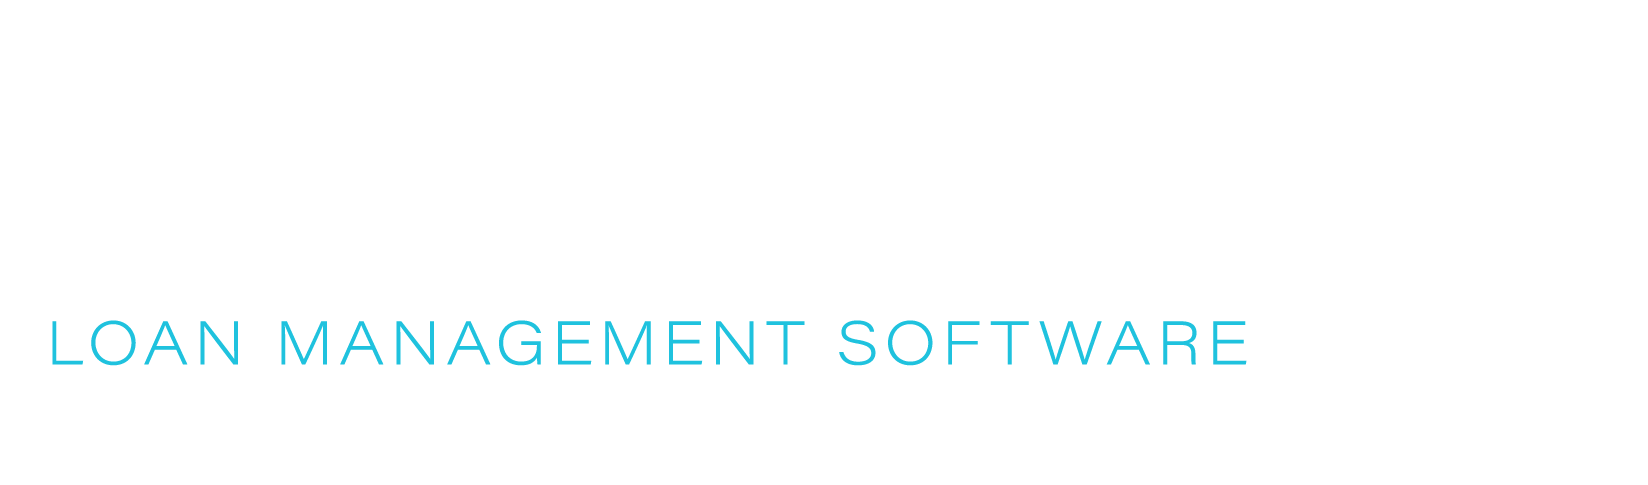 Loan Plus 3: Loan Management Software